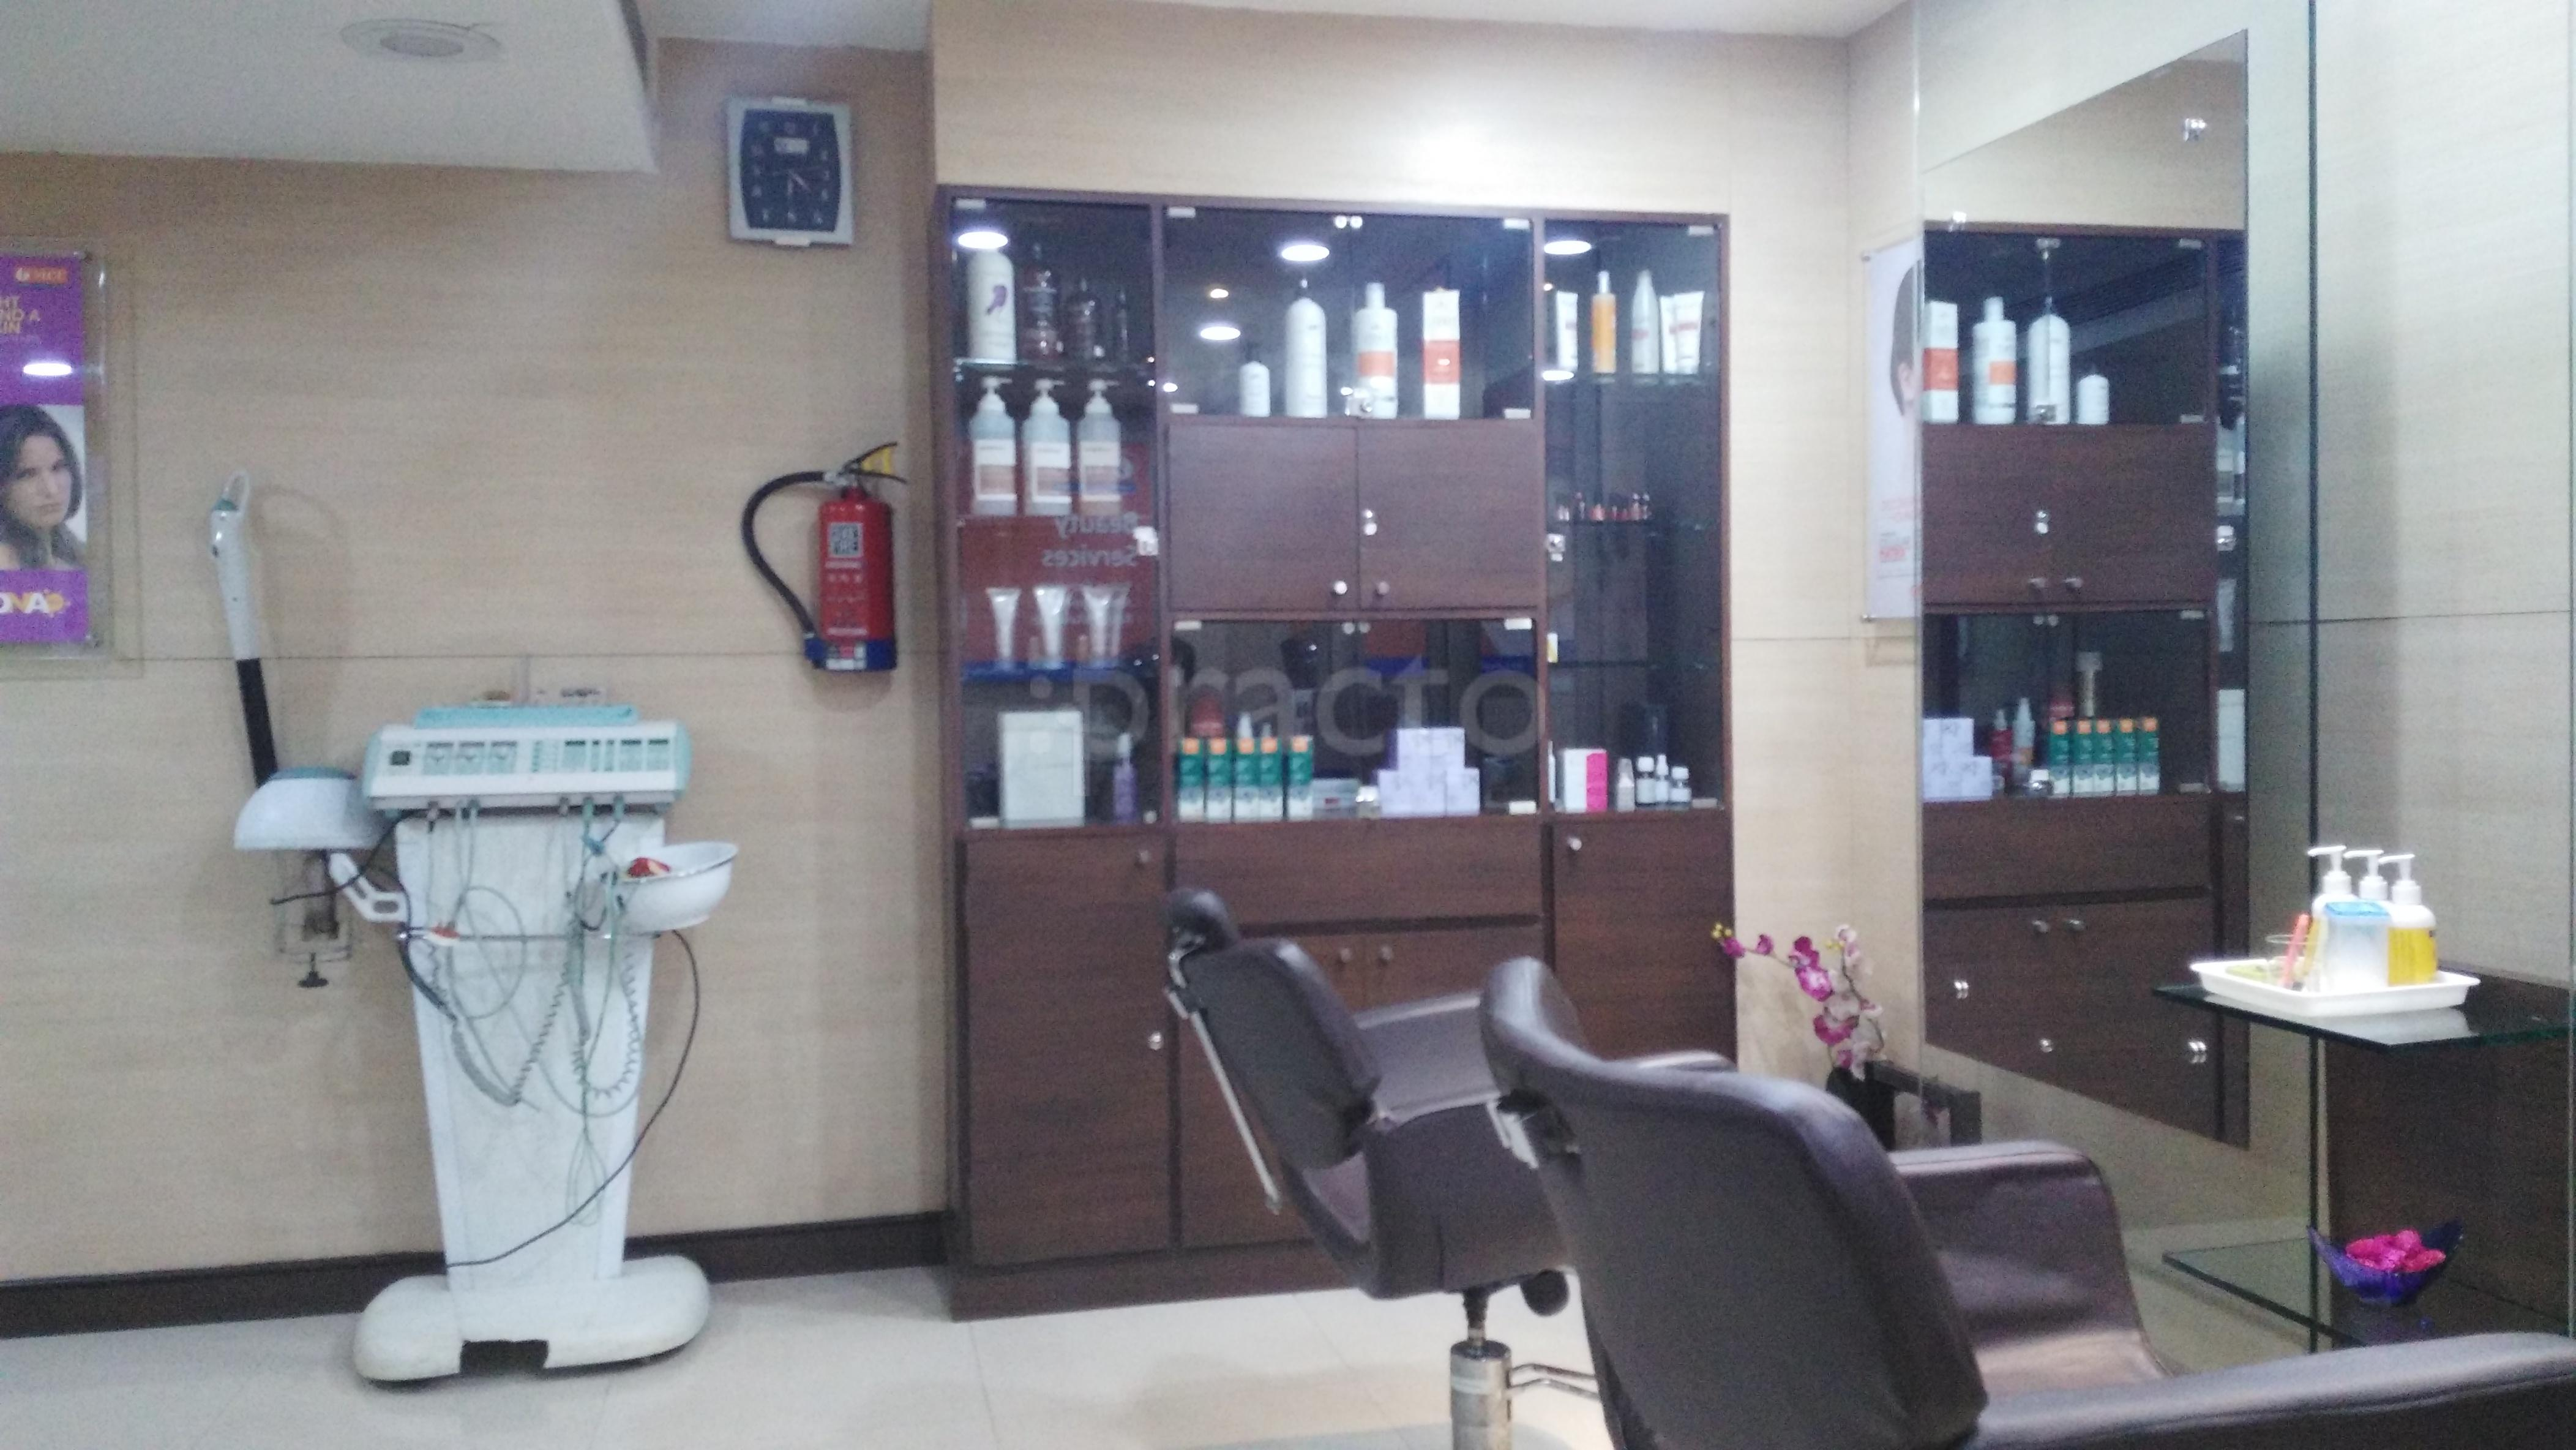 VLCC Wellness and Health care, General Physician Clinic in